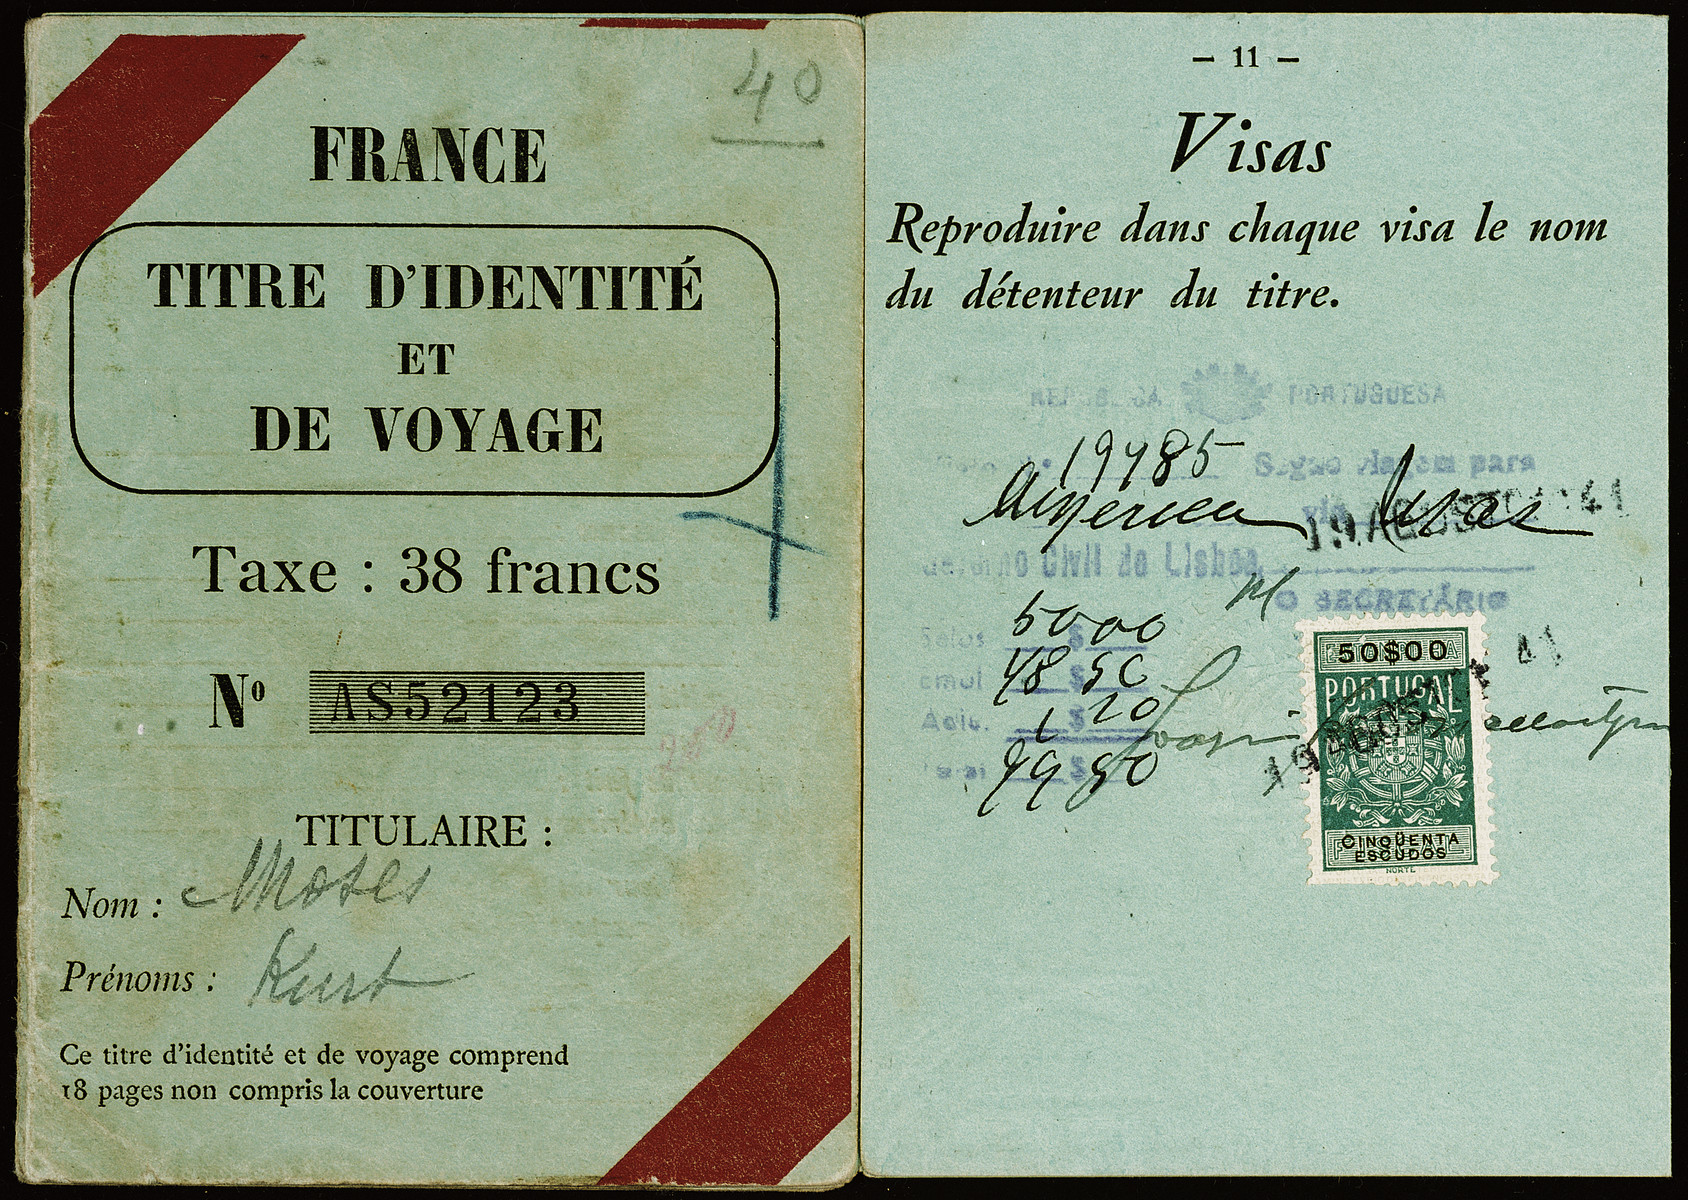 Passport issued to Kurt Moses in France prior to his voyage to the United States on board the Mouzinho.